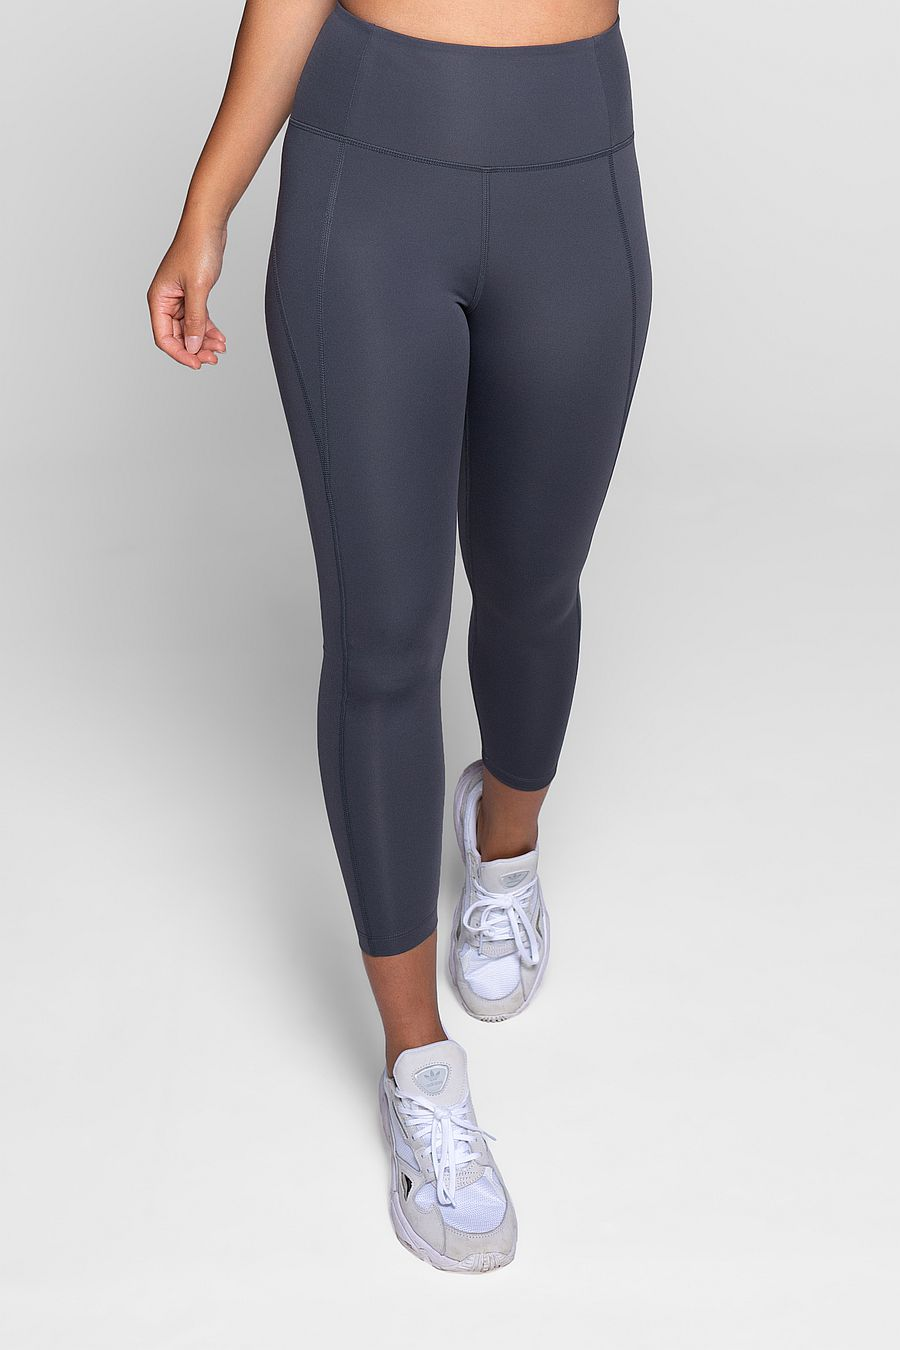 "Girlfriend Collective Smoke Compressive Legging (23 3/4"")"